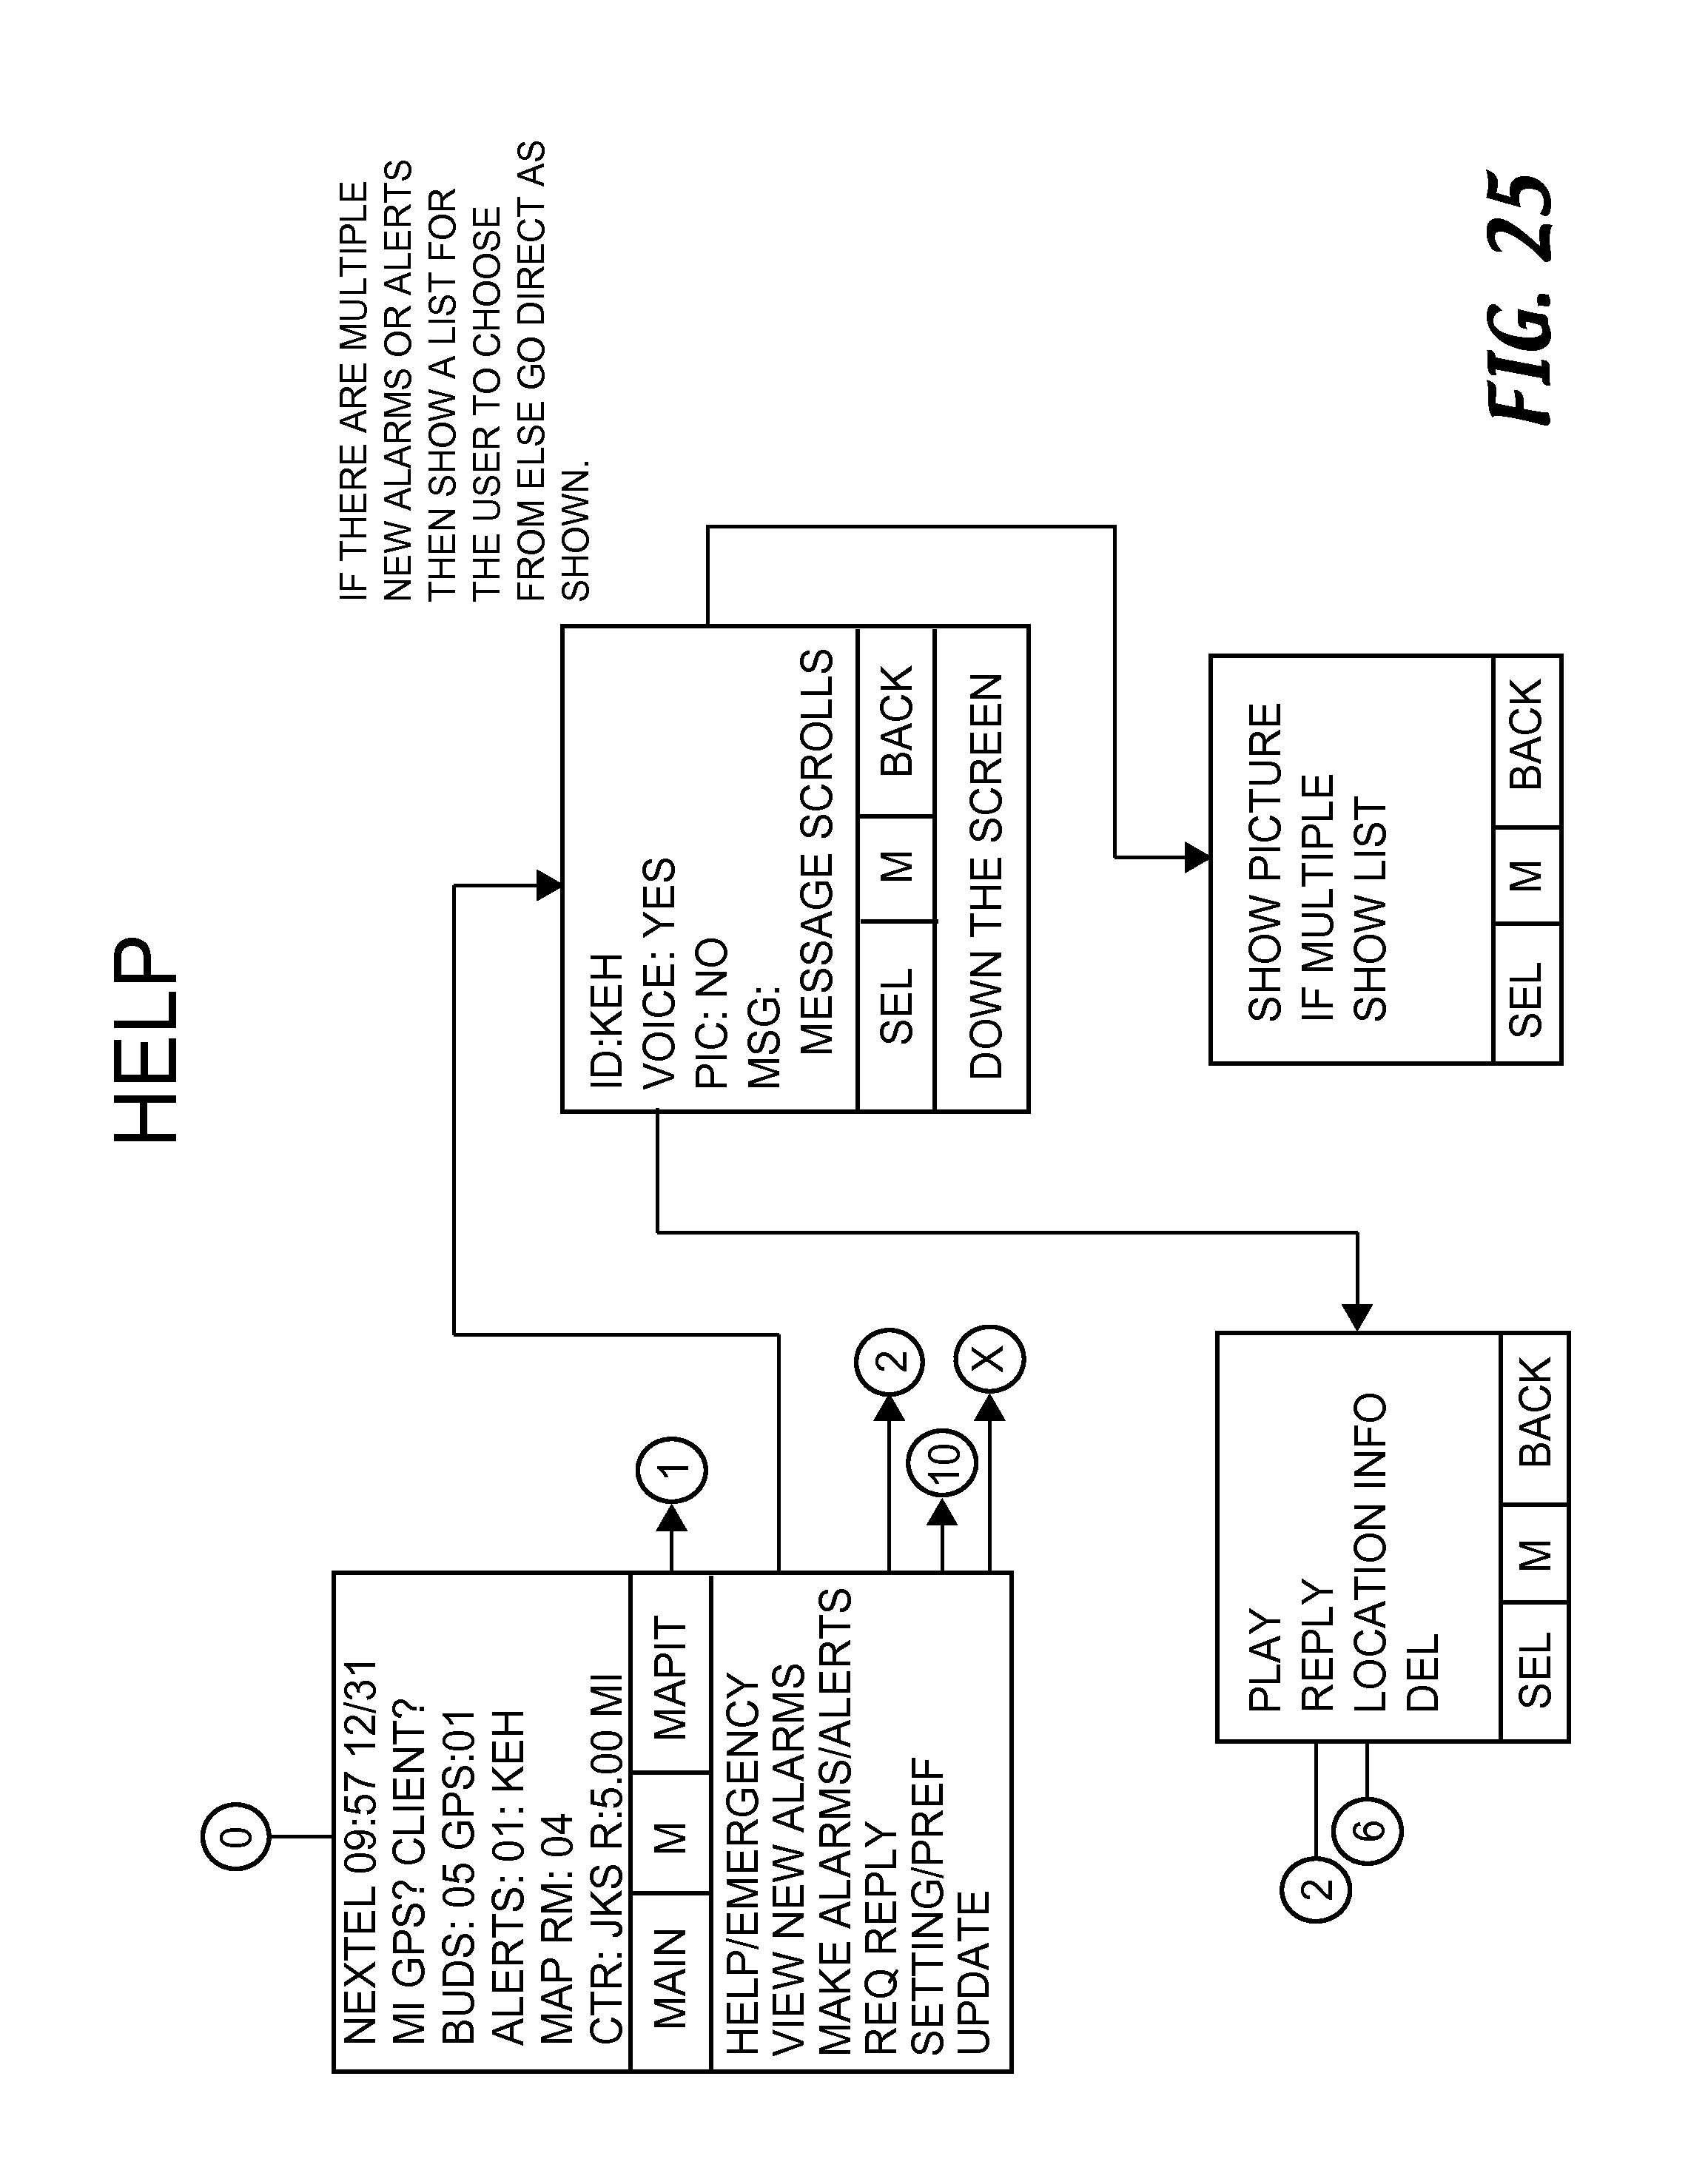 Us9185522b1 Apparatus And Method To Transmit Content A Cellular Charger Circuit Diagram As Well On Magellan Gps Diagrams Wireless Device Based Proximity Other Devices Google Patents